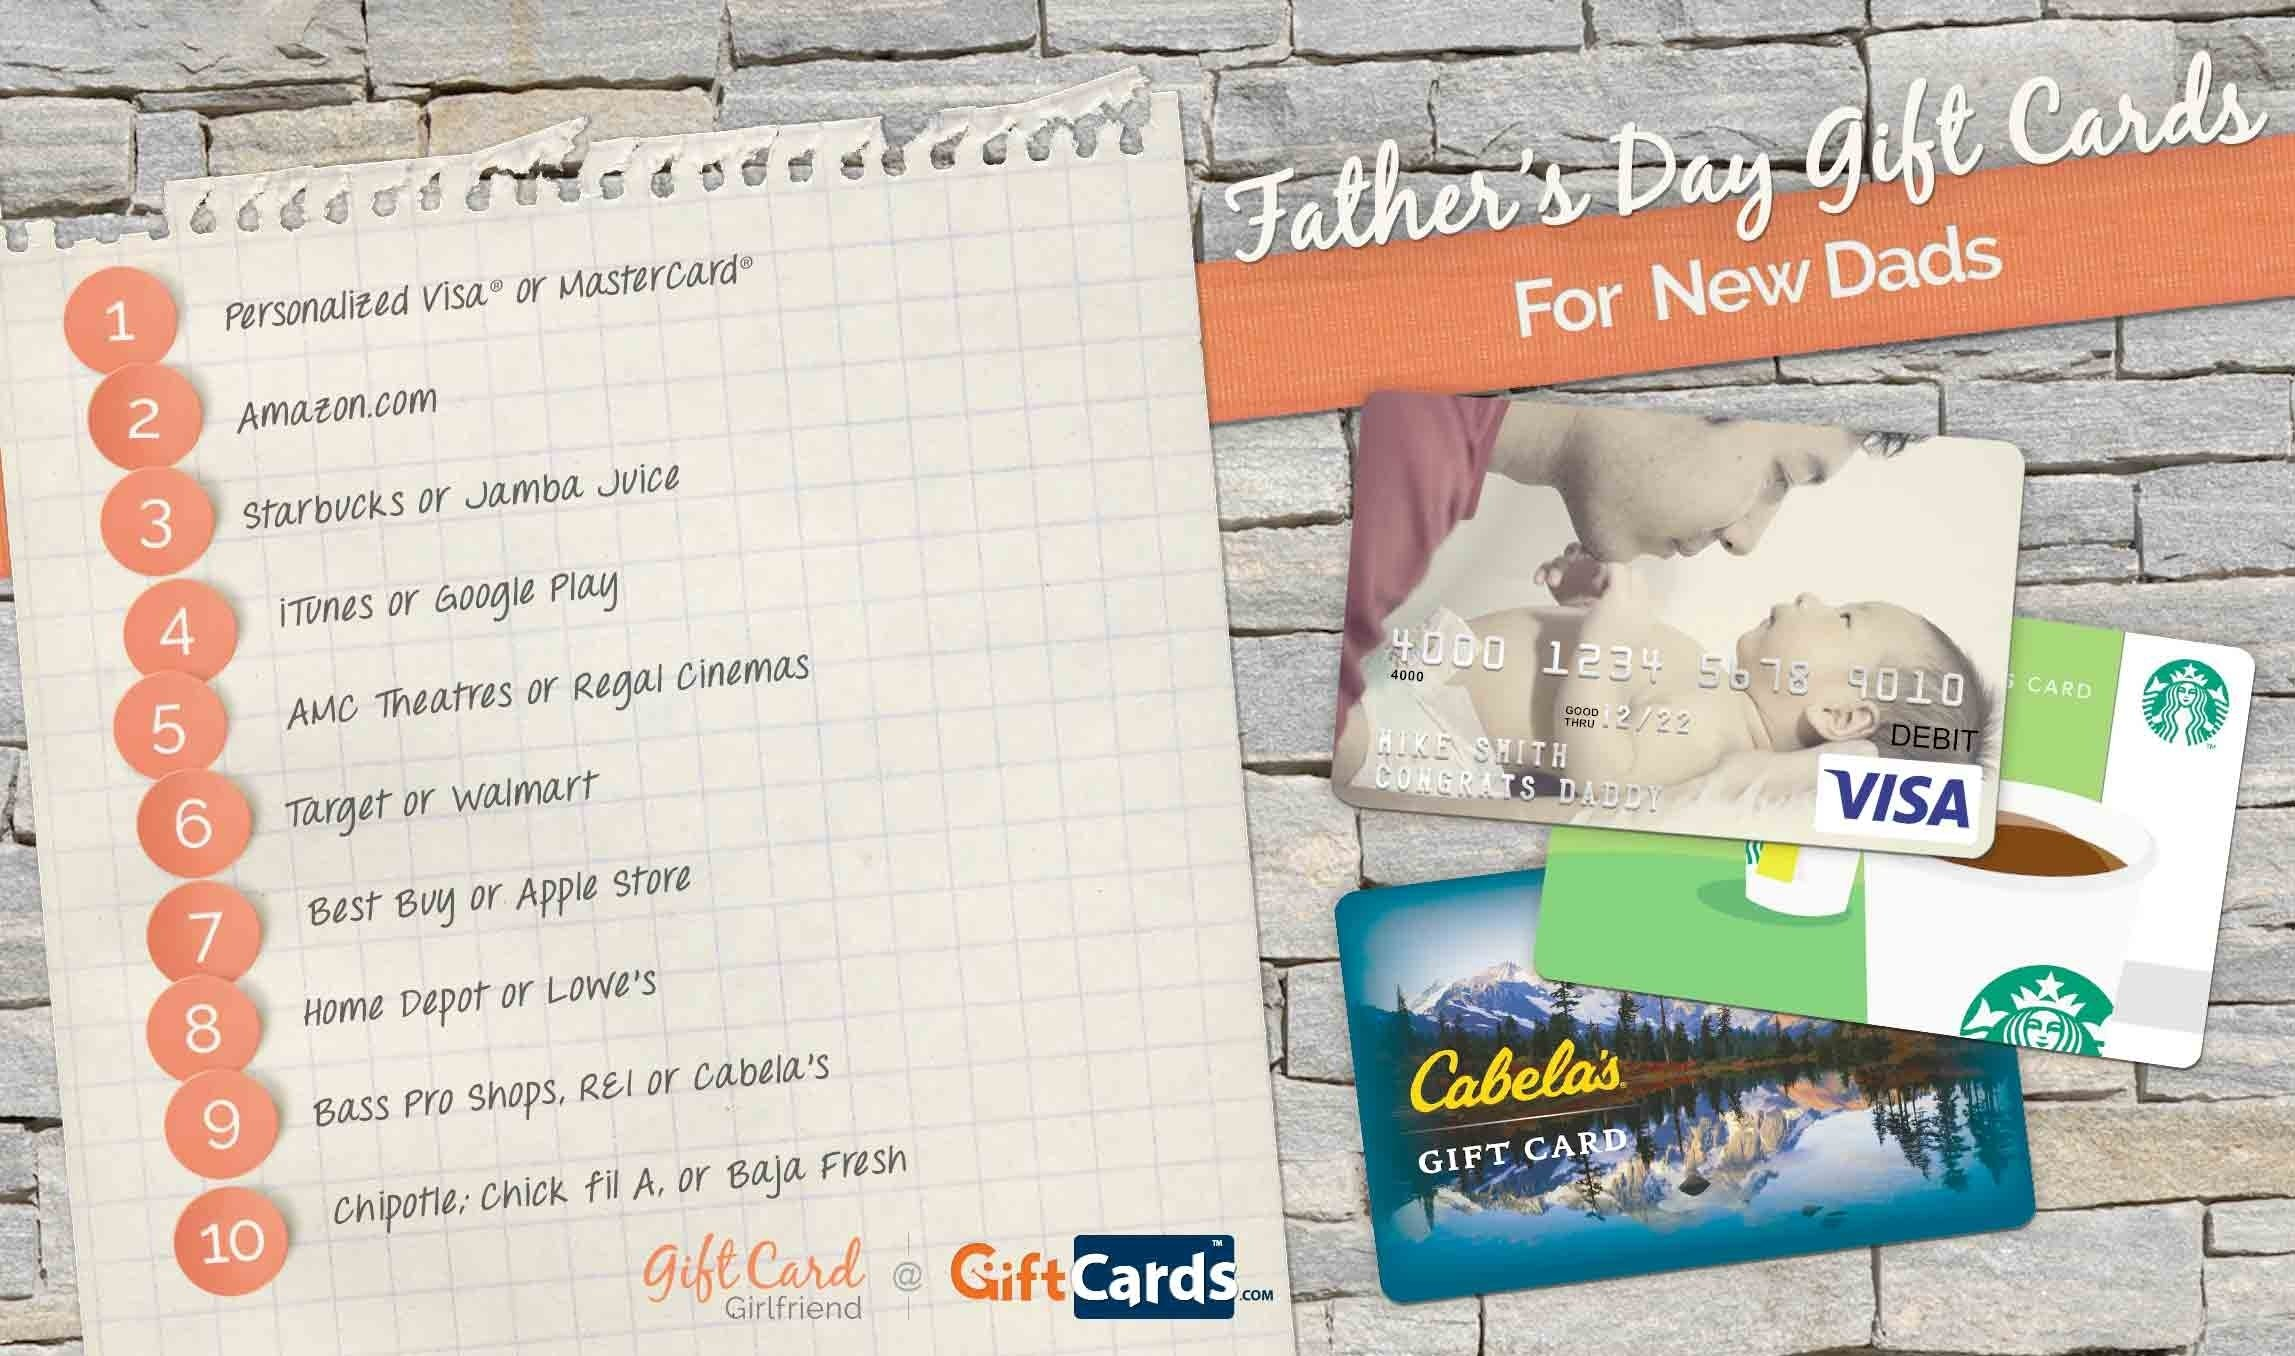 10 Gorgeous Gift Ideas For New Dads top fathers day gift cards for new dads gcg 1 2021